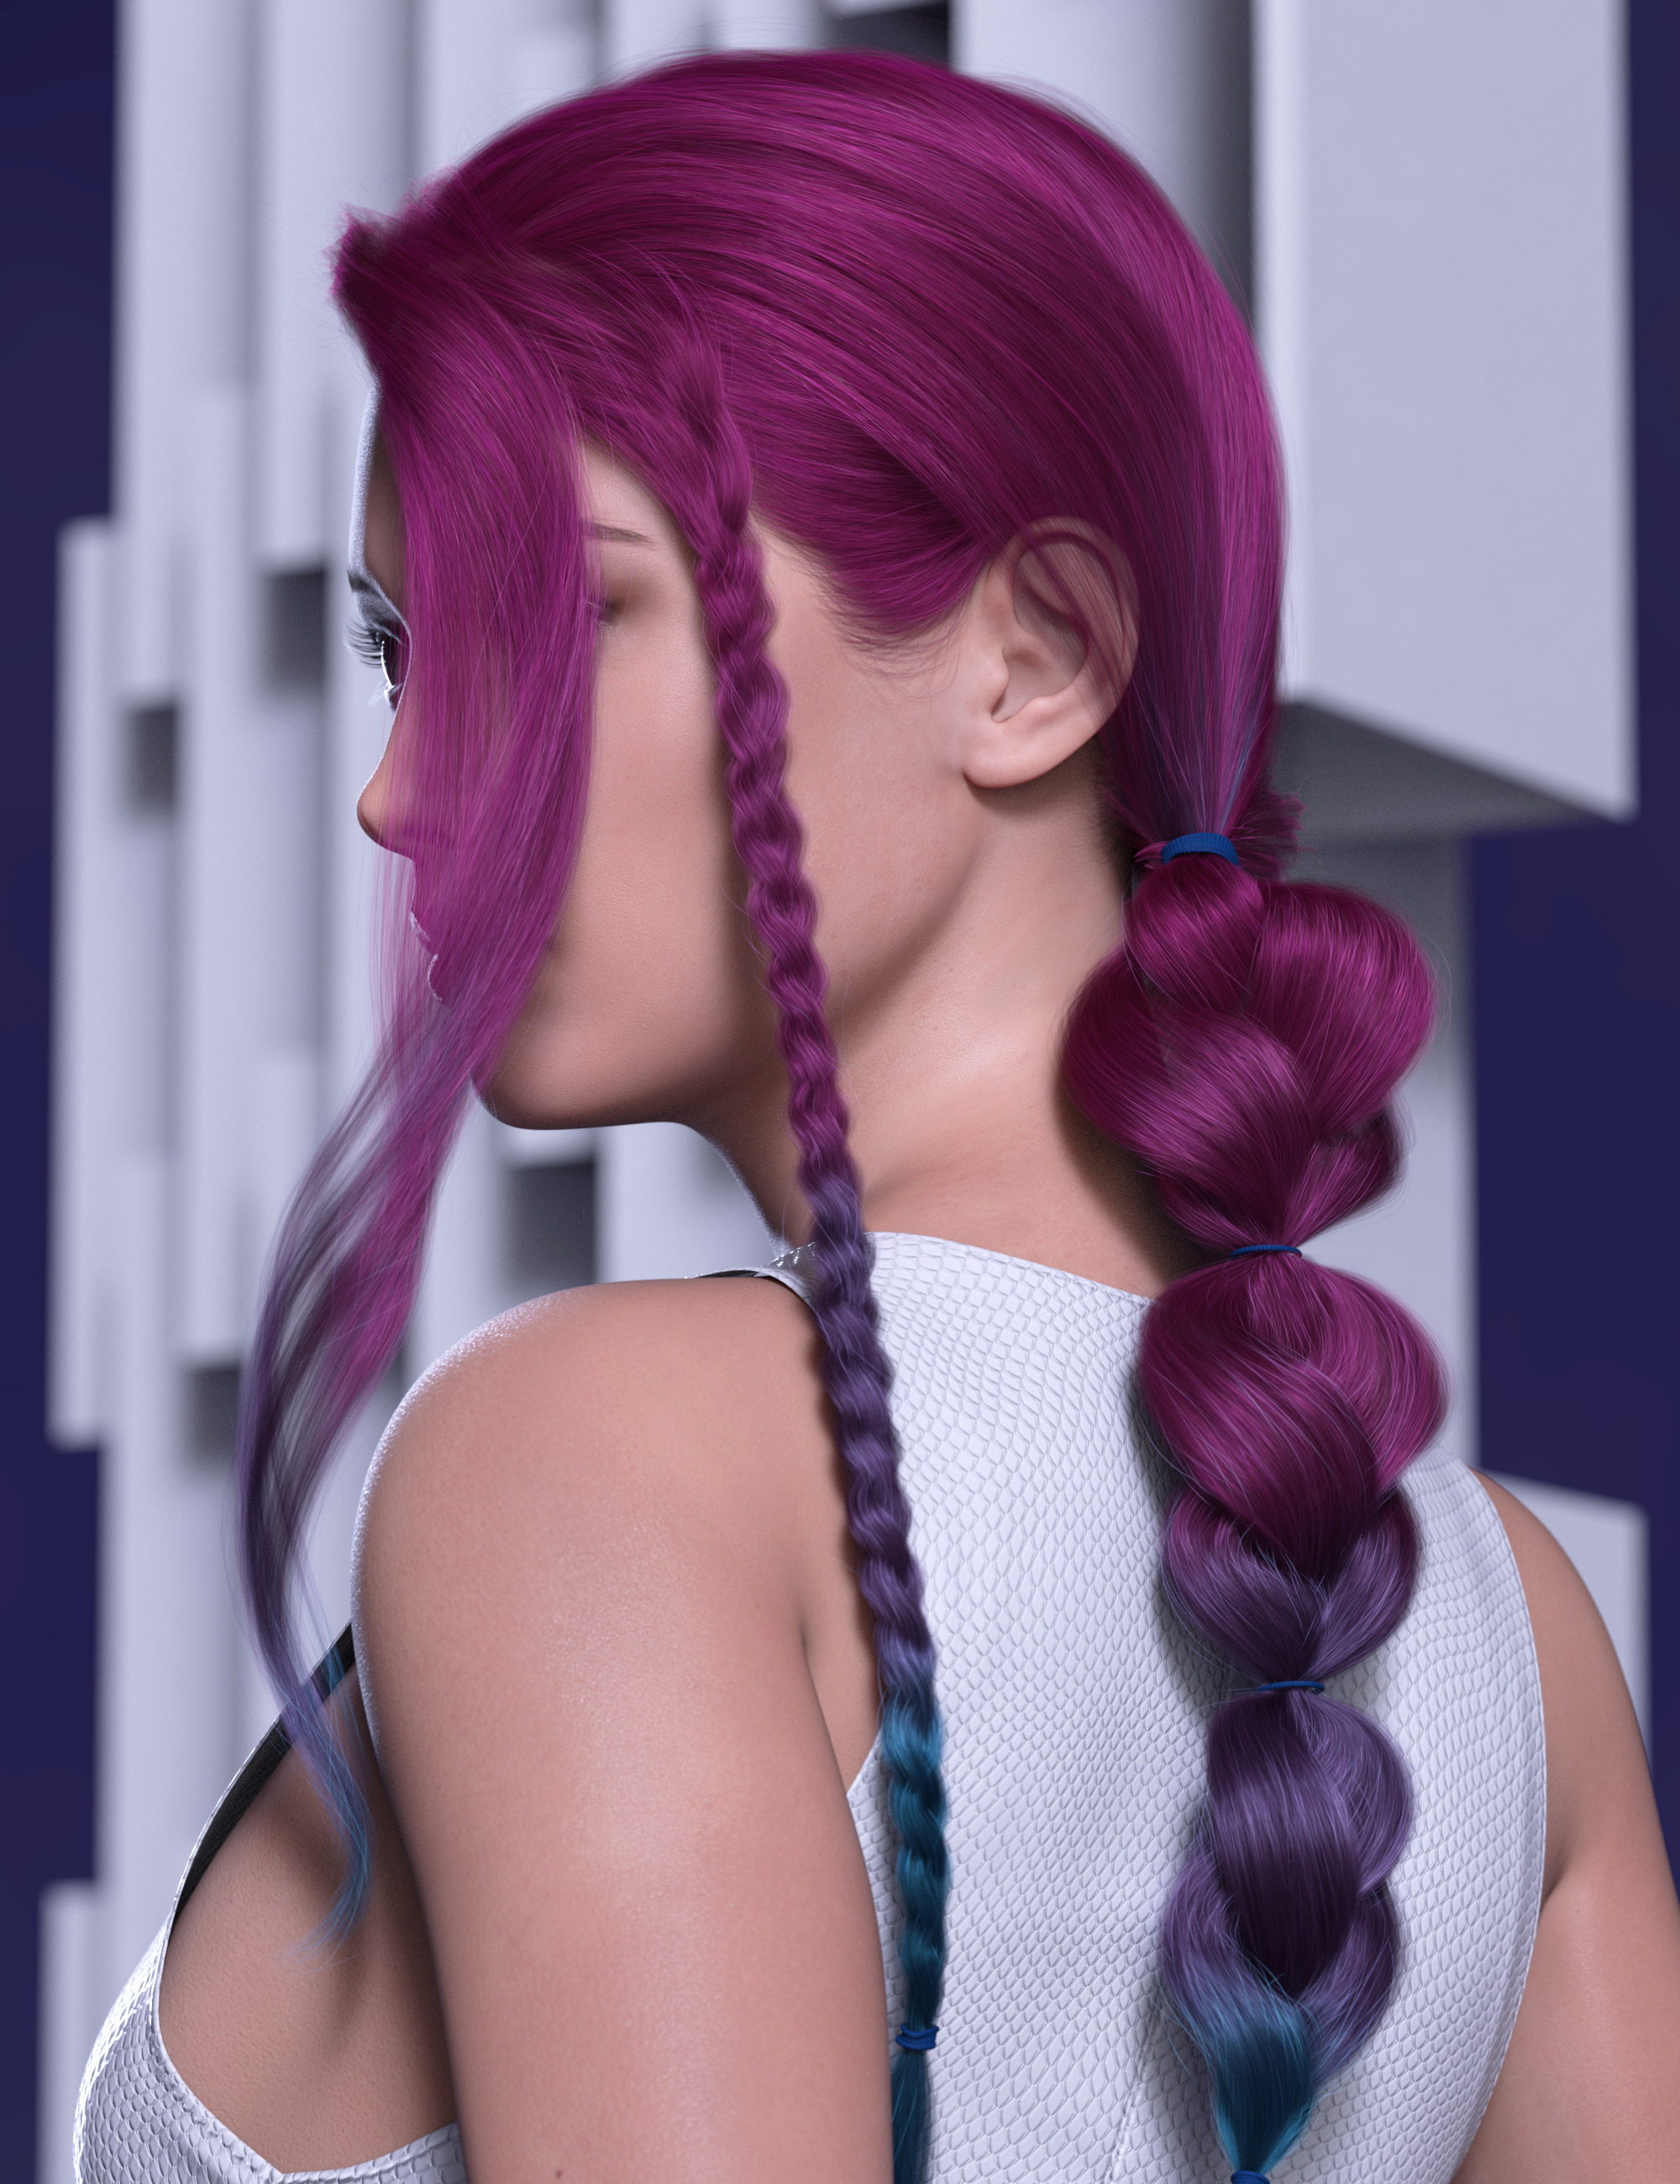 2021-14 Hair Texture Expansion by: outoftouch, 3D Models by Daz 3D